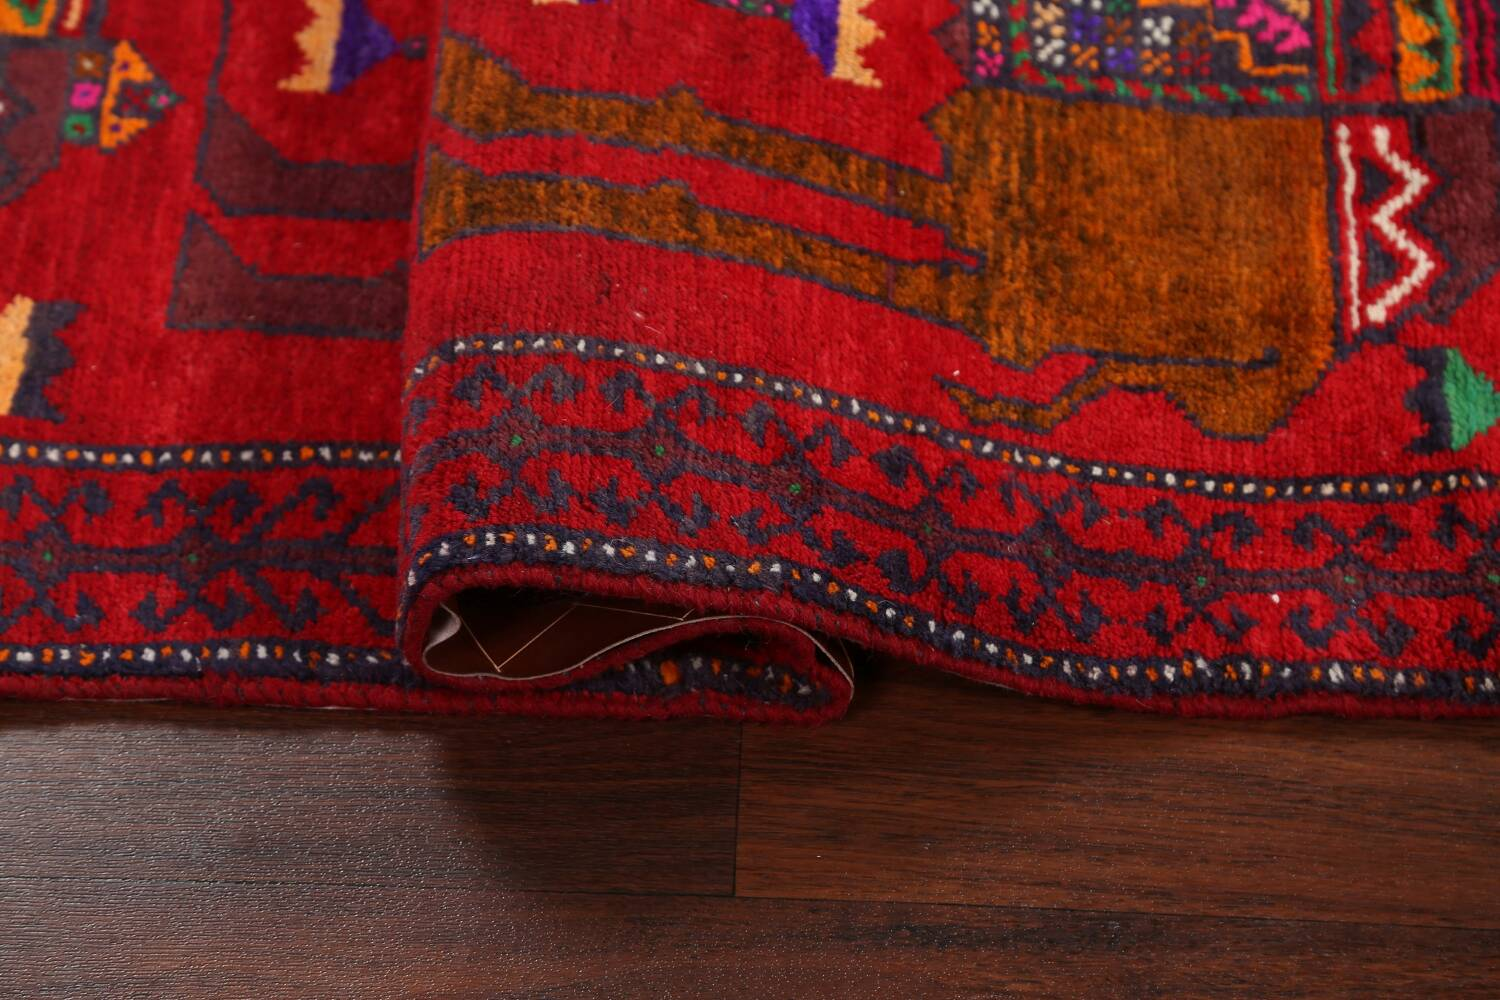 Animal Pictorial Balouch Persian Area Rug 4x8 image 12